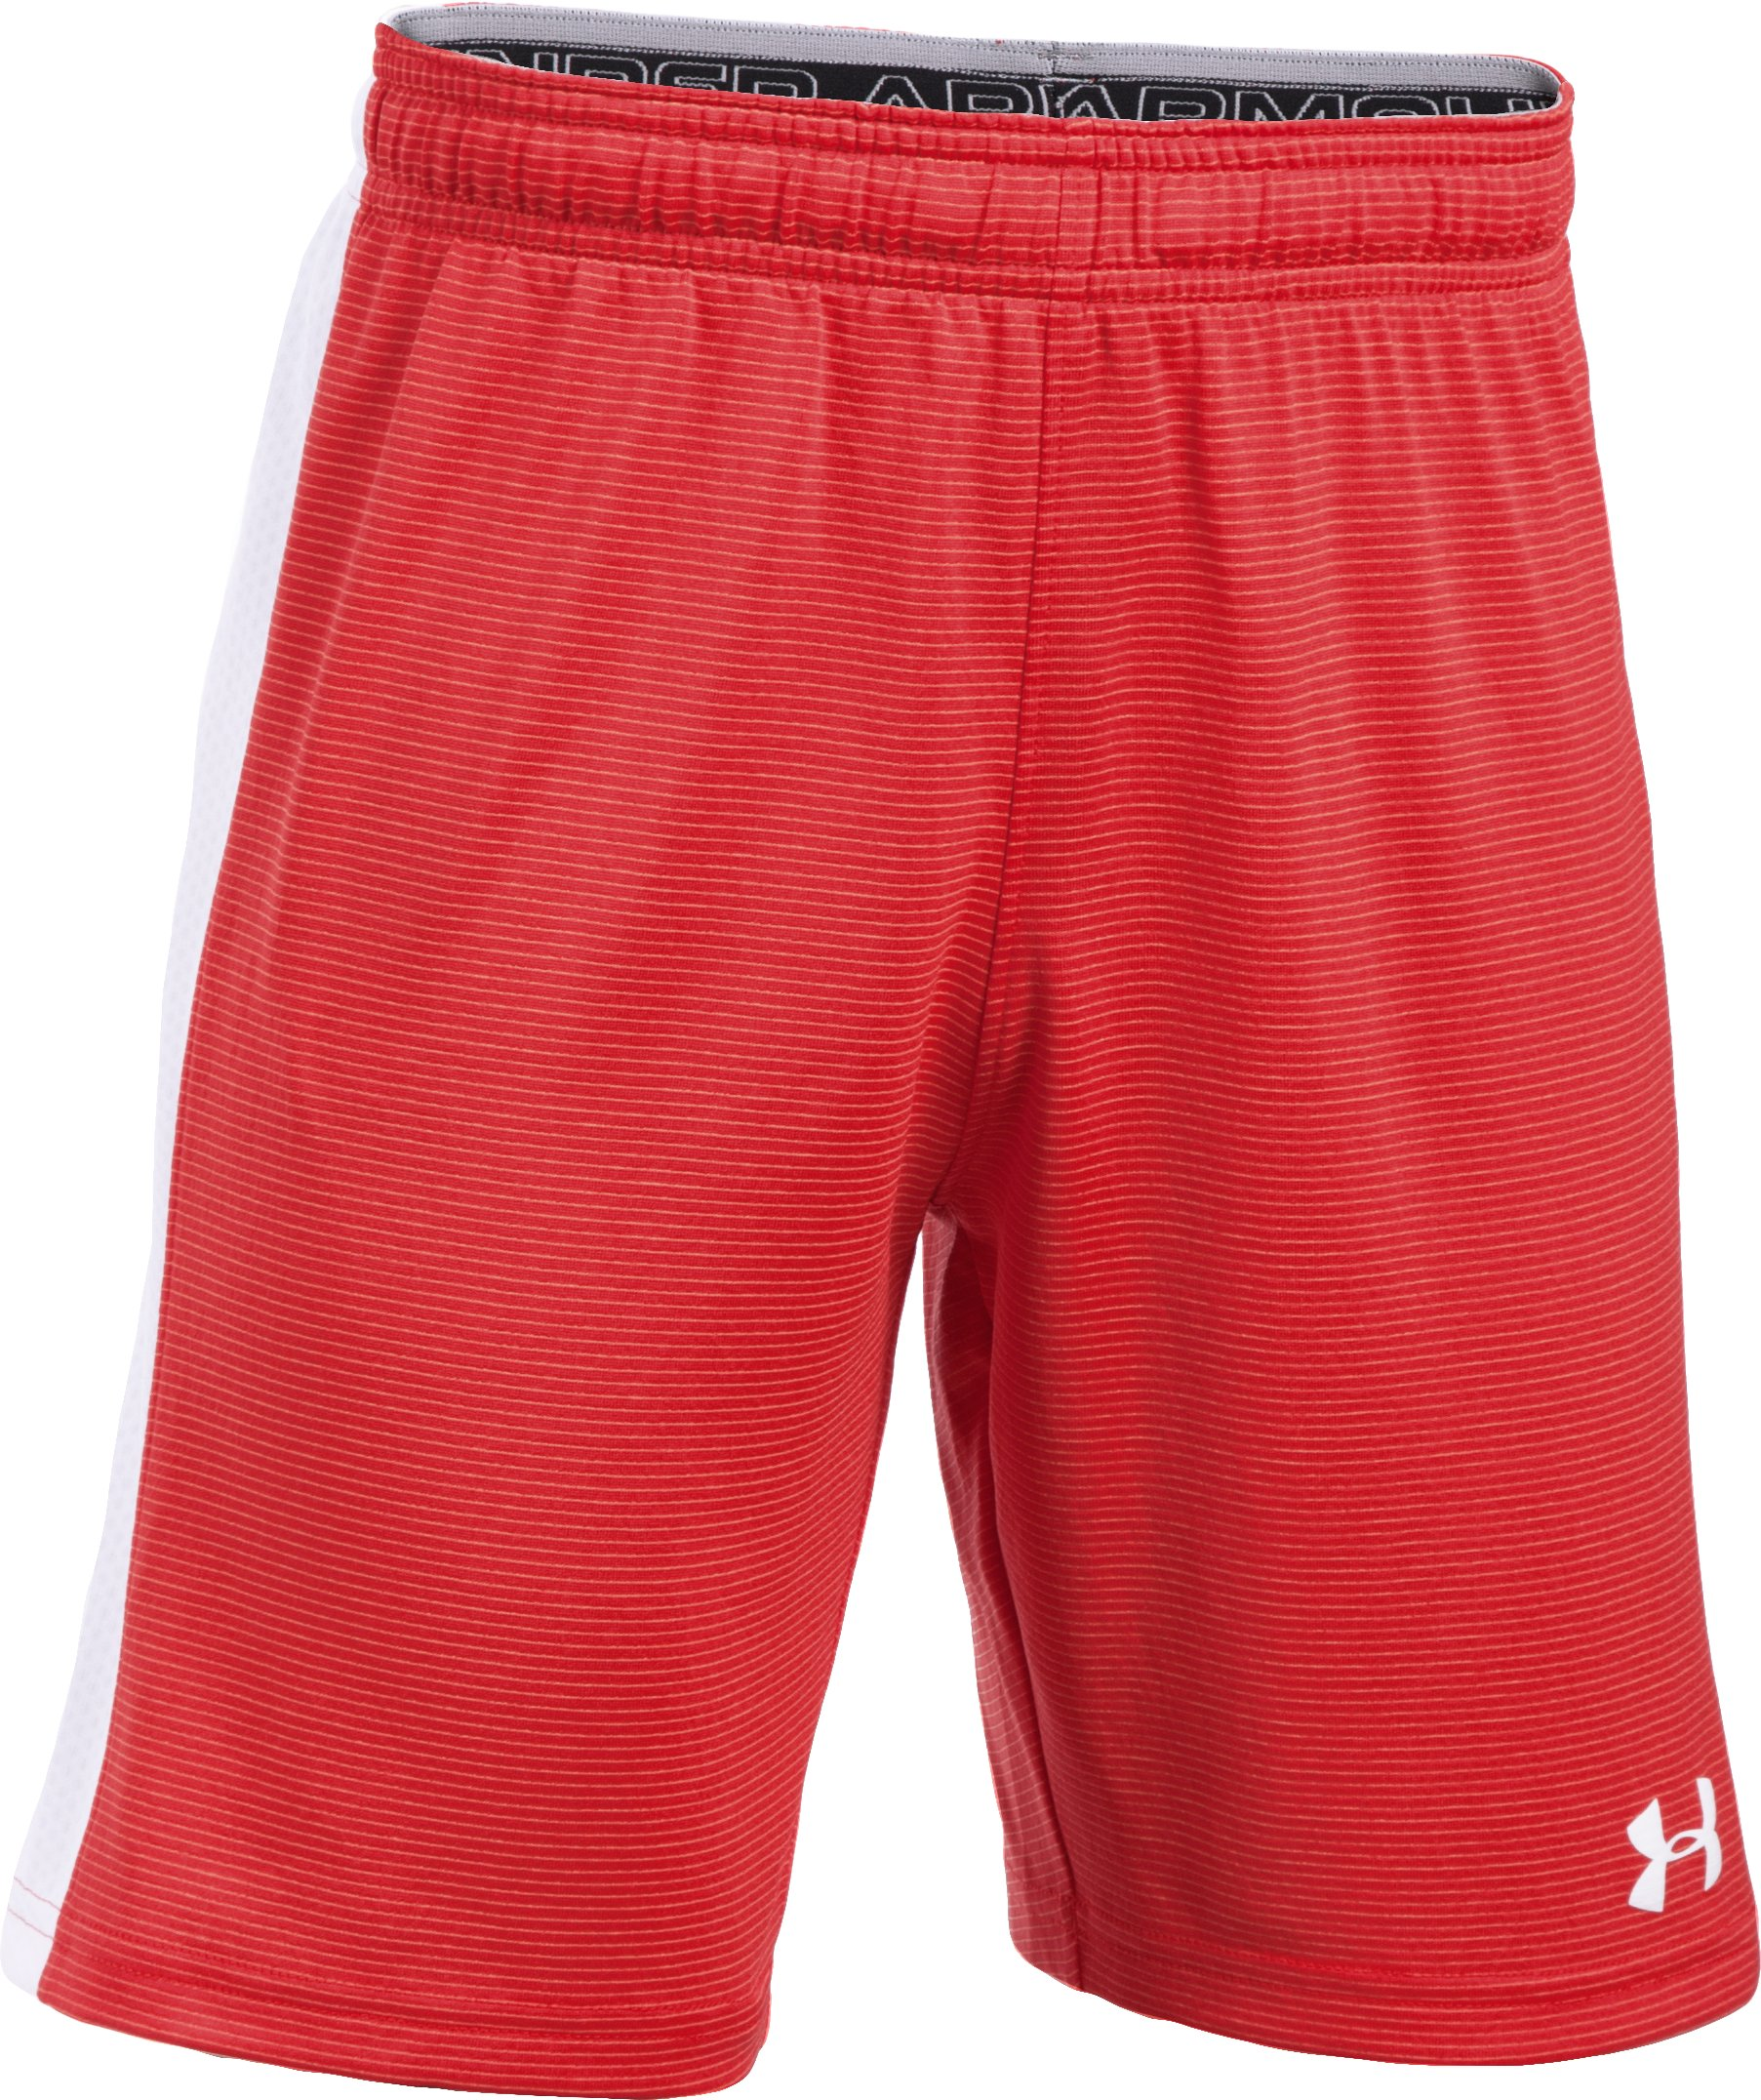 Boys' UA Threadborne Match Shorts, Red, undefined